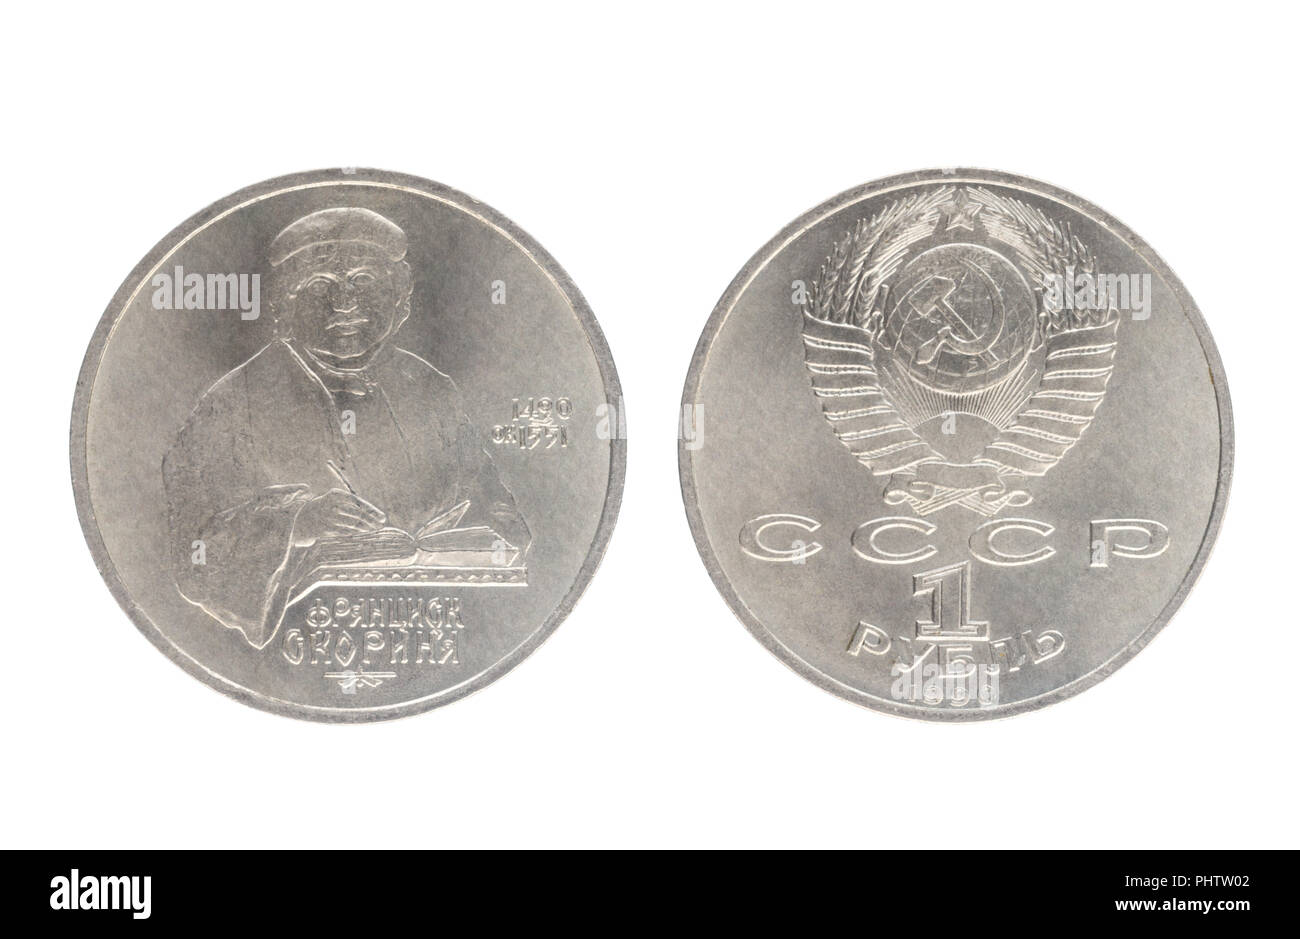 Set of commemorative the USSR coin in 1990, the nominal value of 1 ruble, shows 500th anniversary of the birth of the outstanding figure of Slavic cul - Stock Image